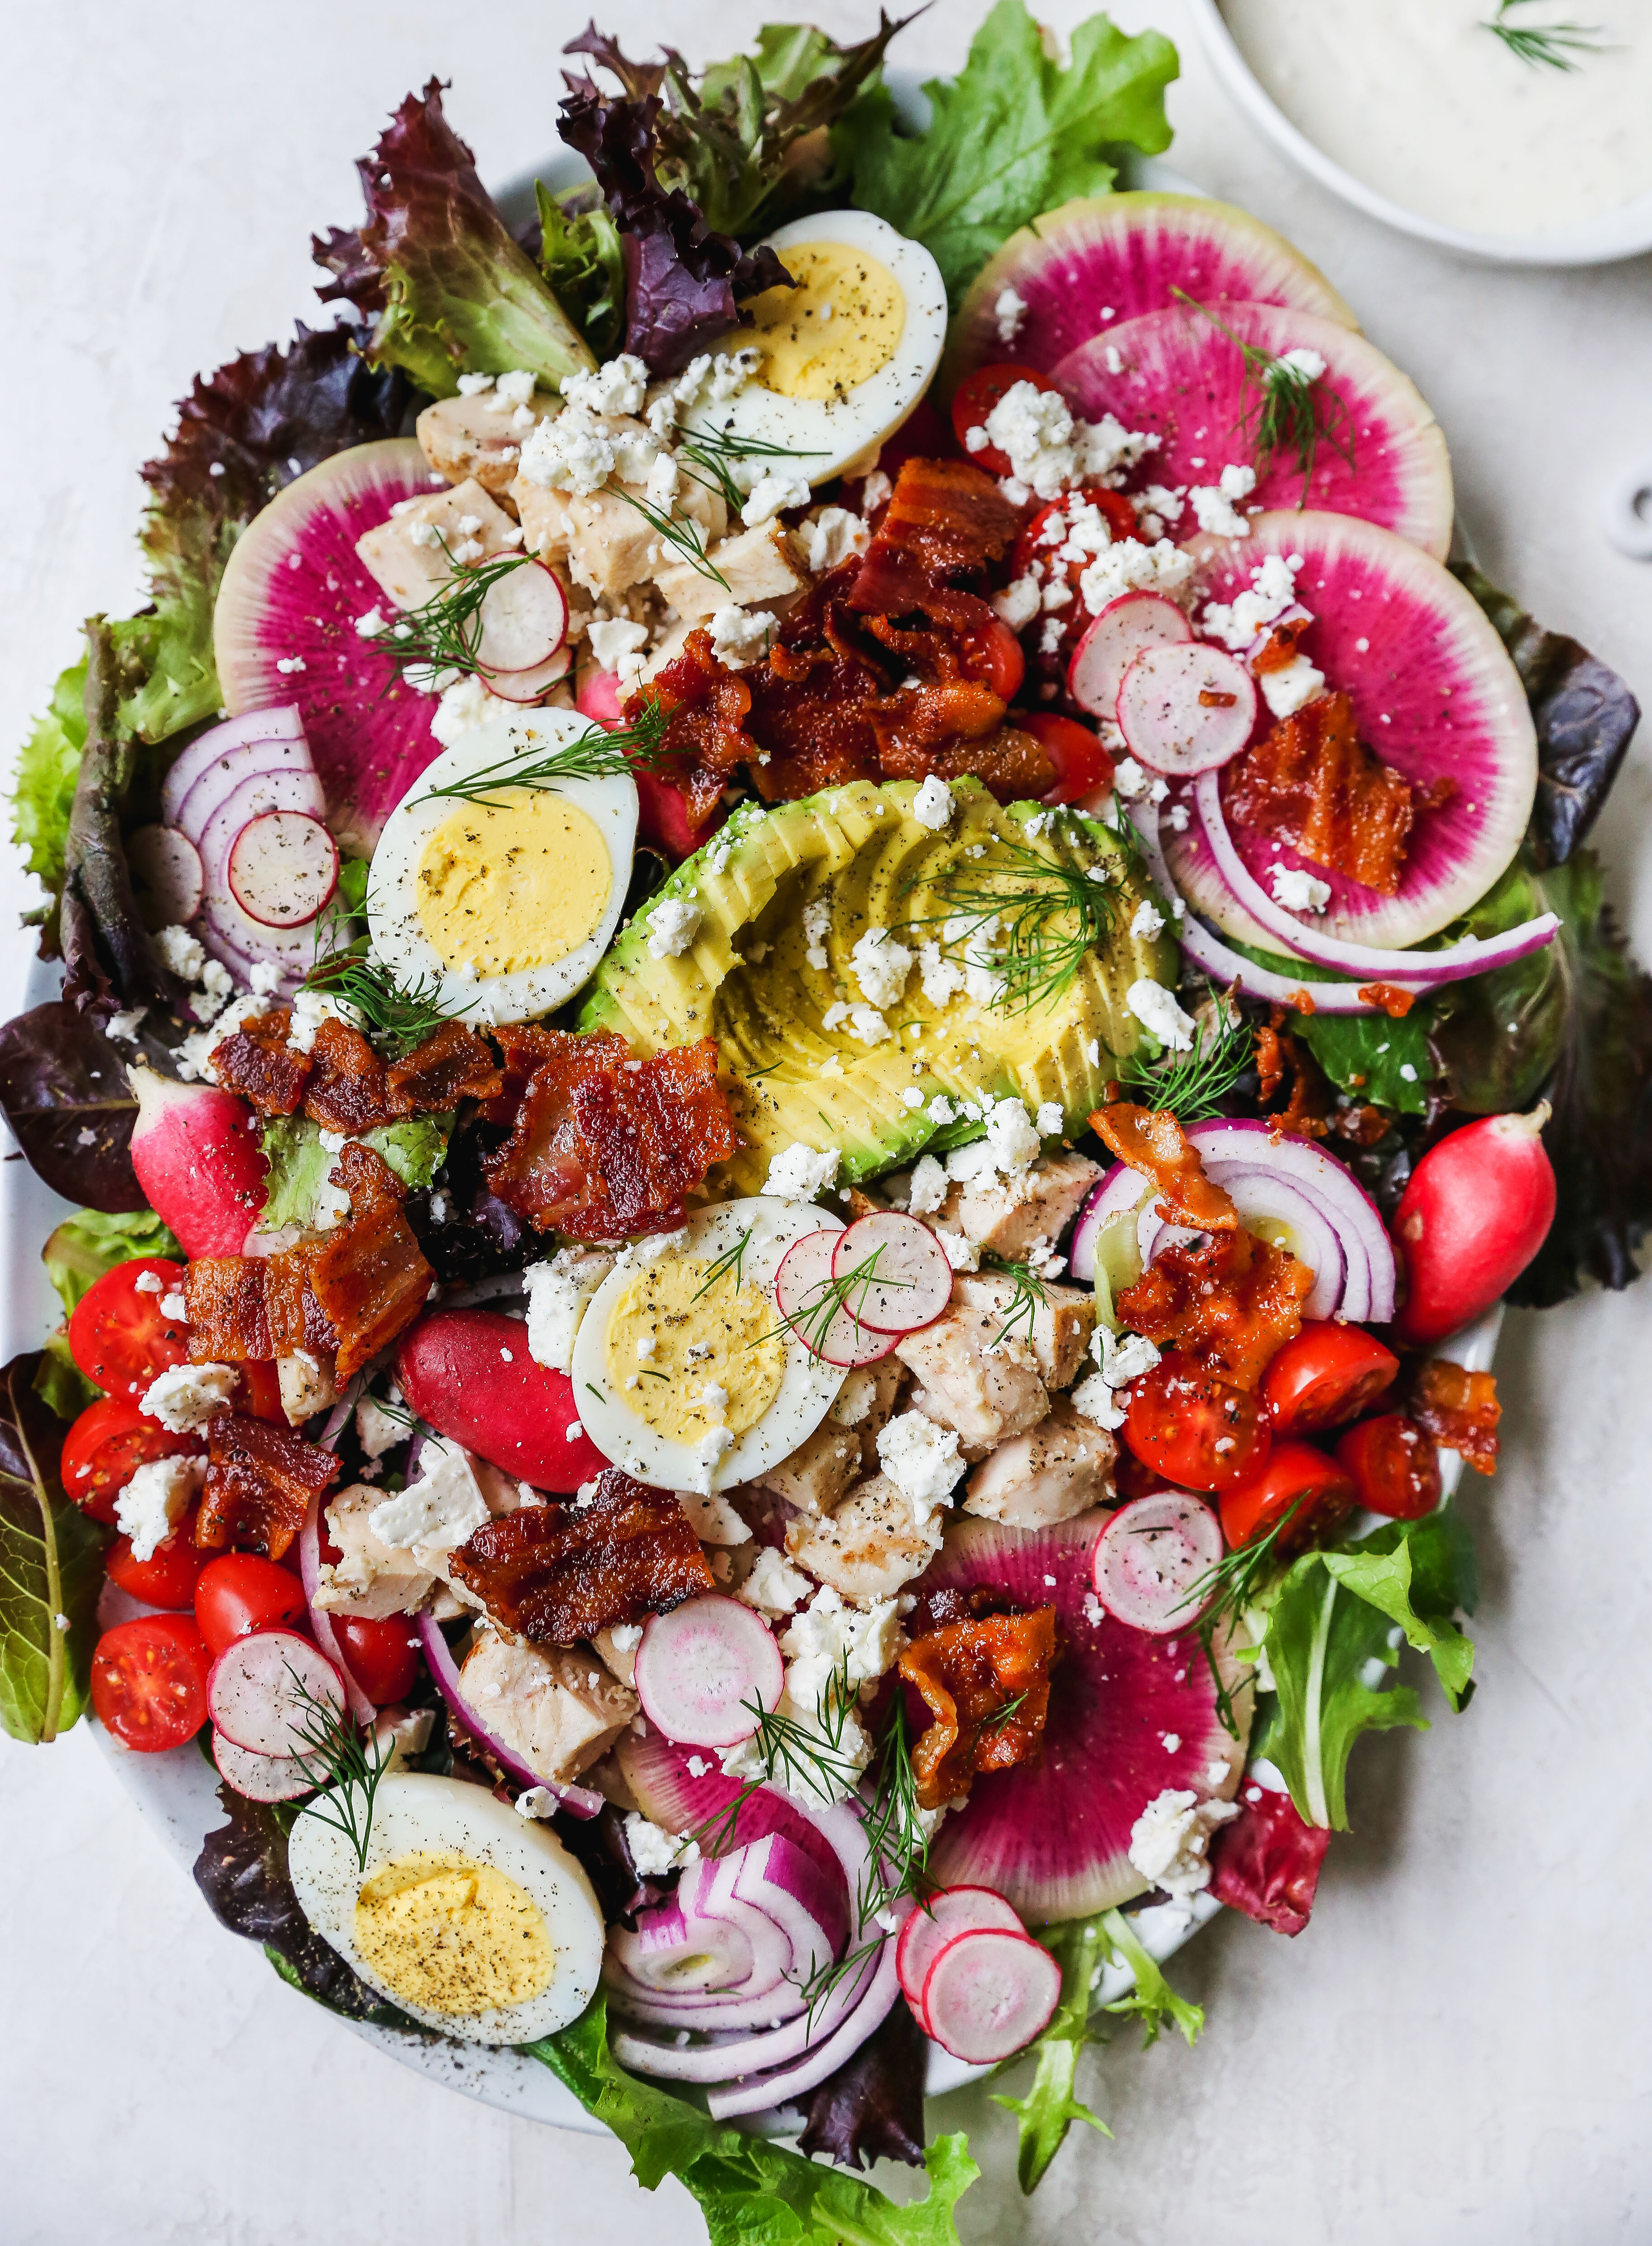 Spring BLT Cobb Salad with Creamy Dill Dressing